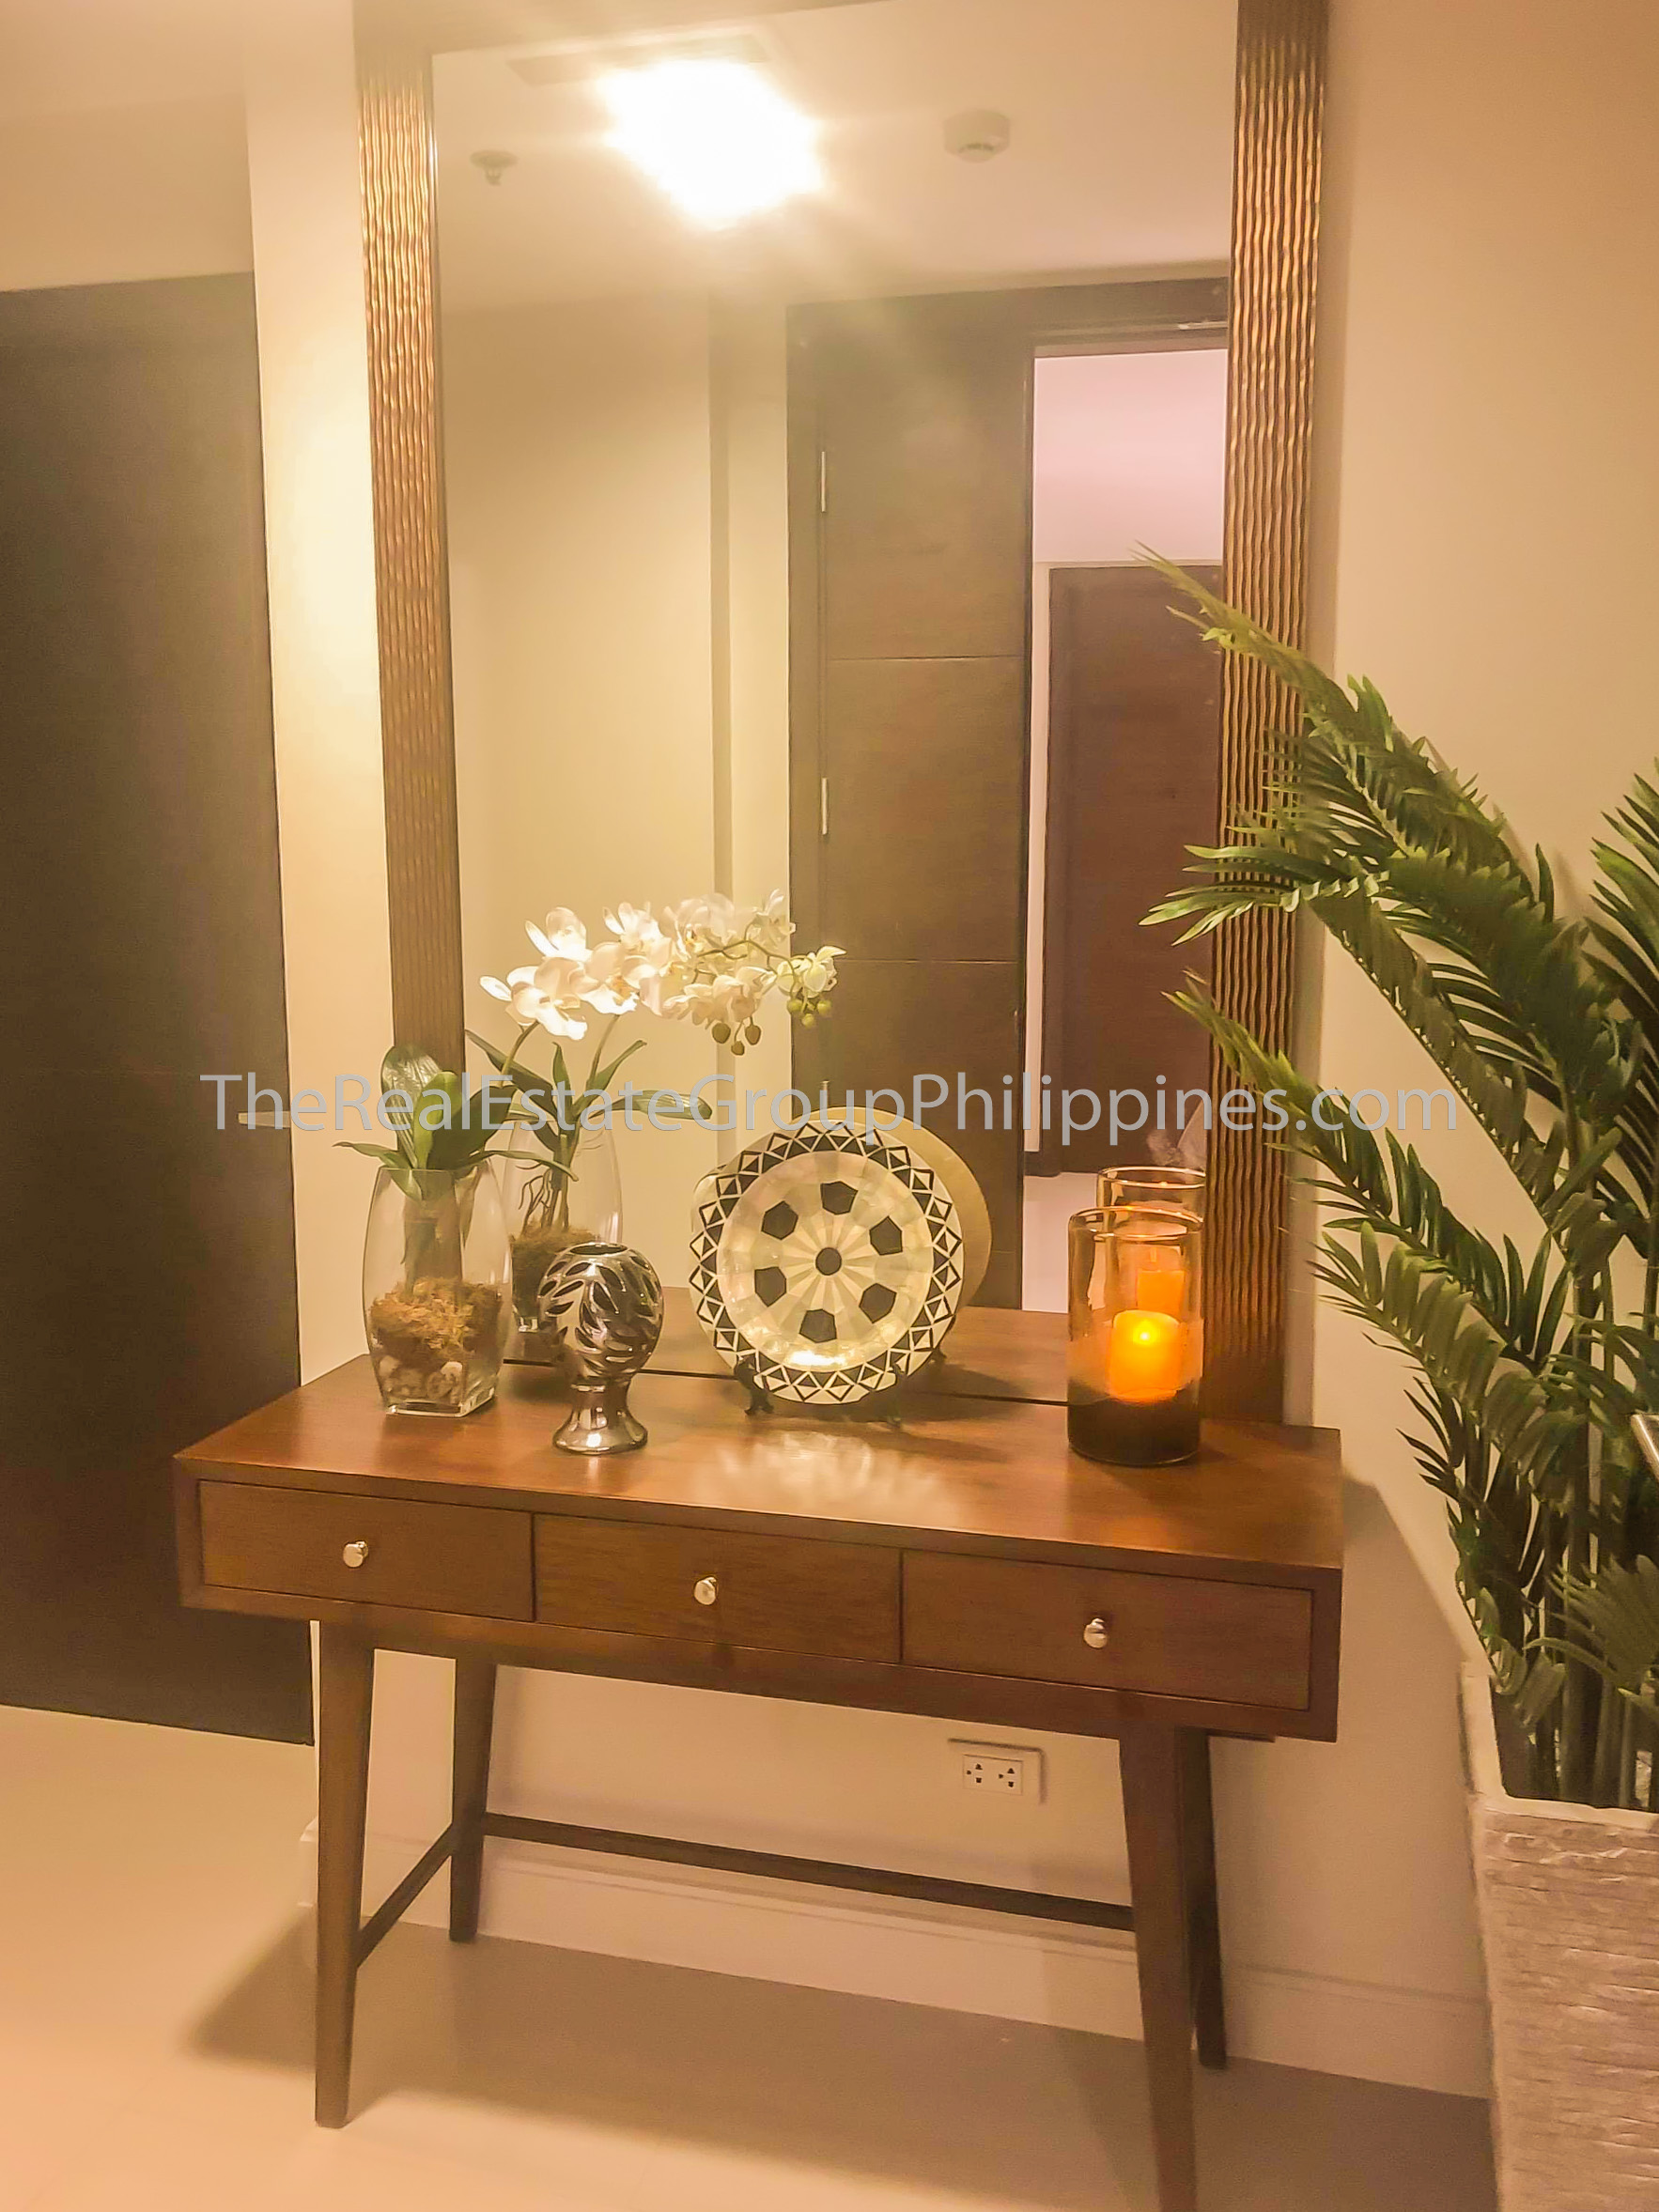 1BR Condo For Rent Lease Arbor Lanes, Arca South, Taguig (9 of 13)